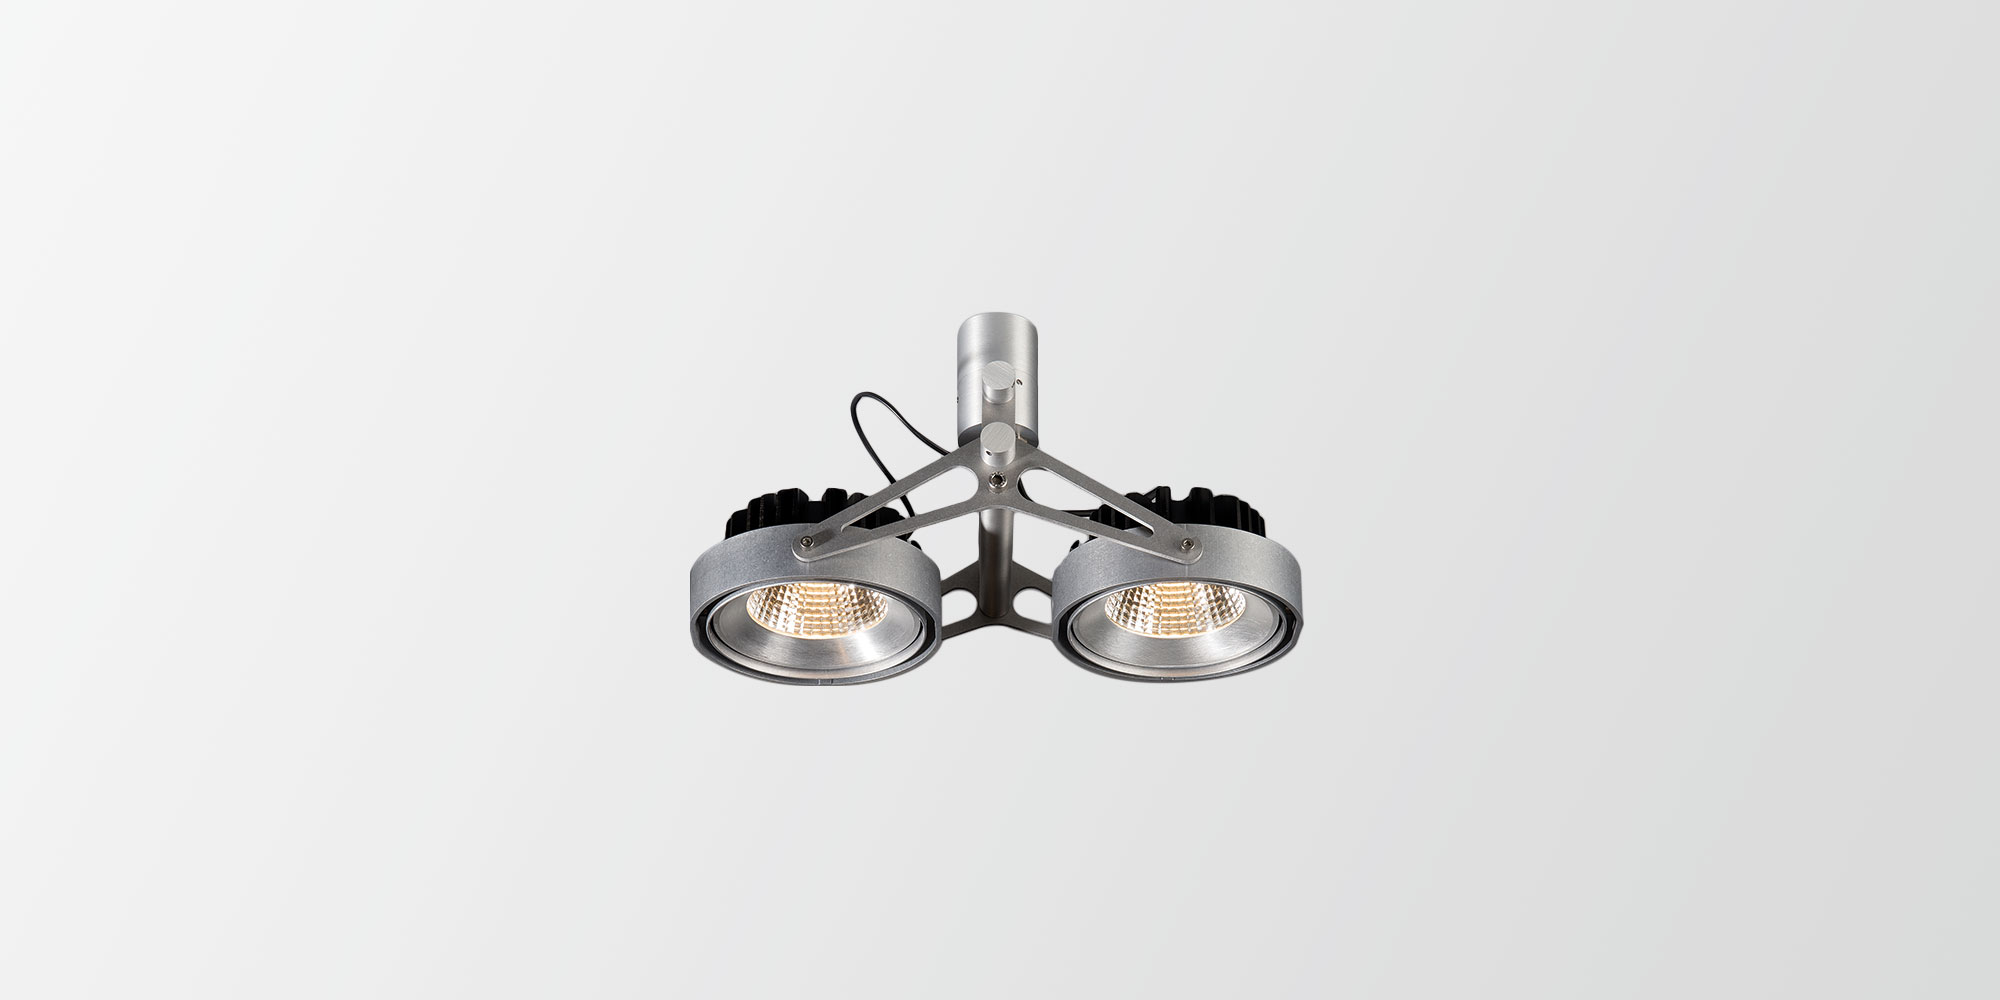 Jsb Lighting Nomad 111 2 Light Fixture Wiring White Black Is A Classic This Refined Industrial Fitting With Its Visible Perfect For Highlighting Your Favourite Elements In